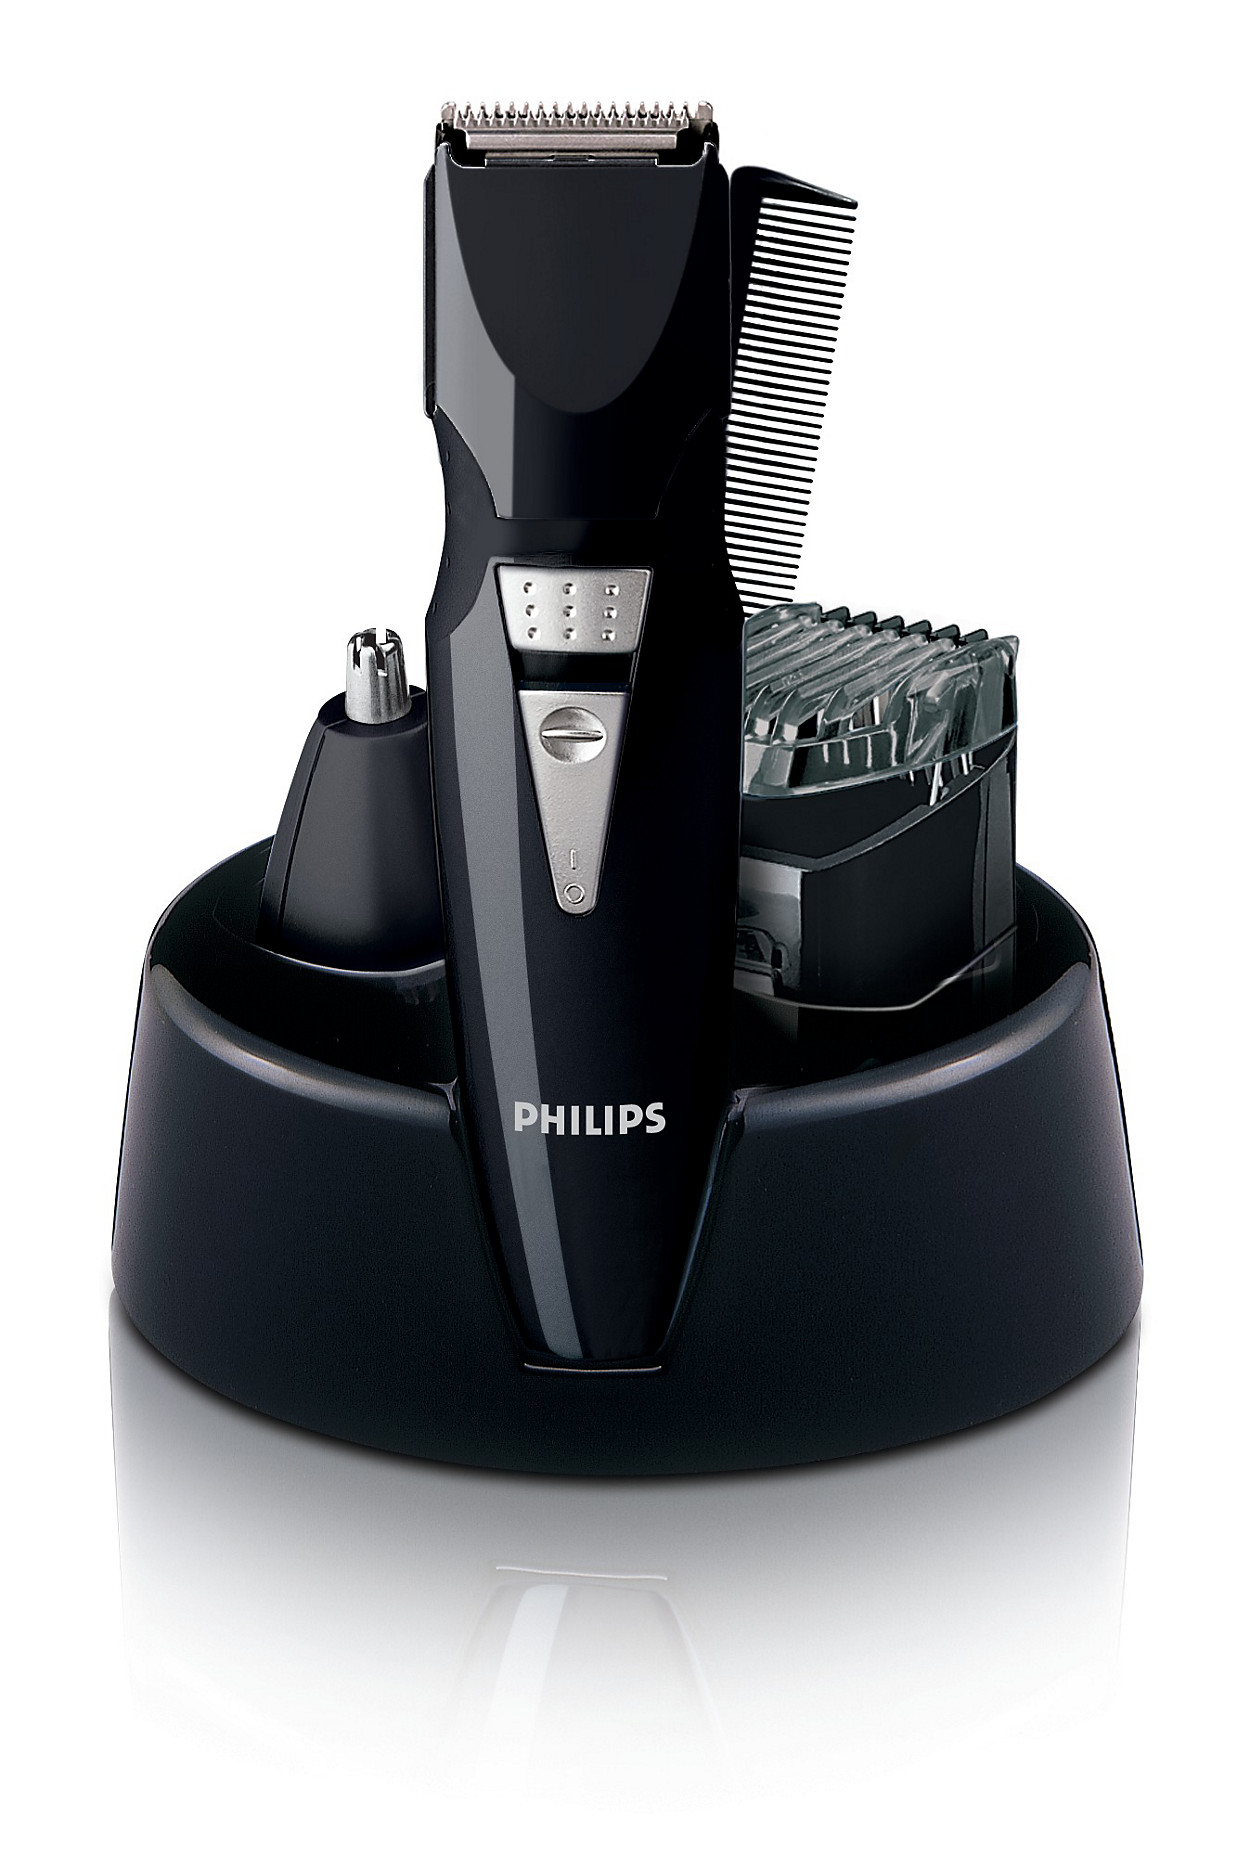 multigroom series 3000 grooming kit qg3030 10 philips. Black Bedroom Furniture Sets. Home Design Ideas